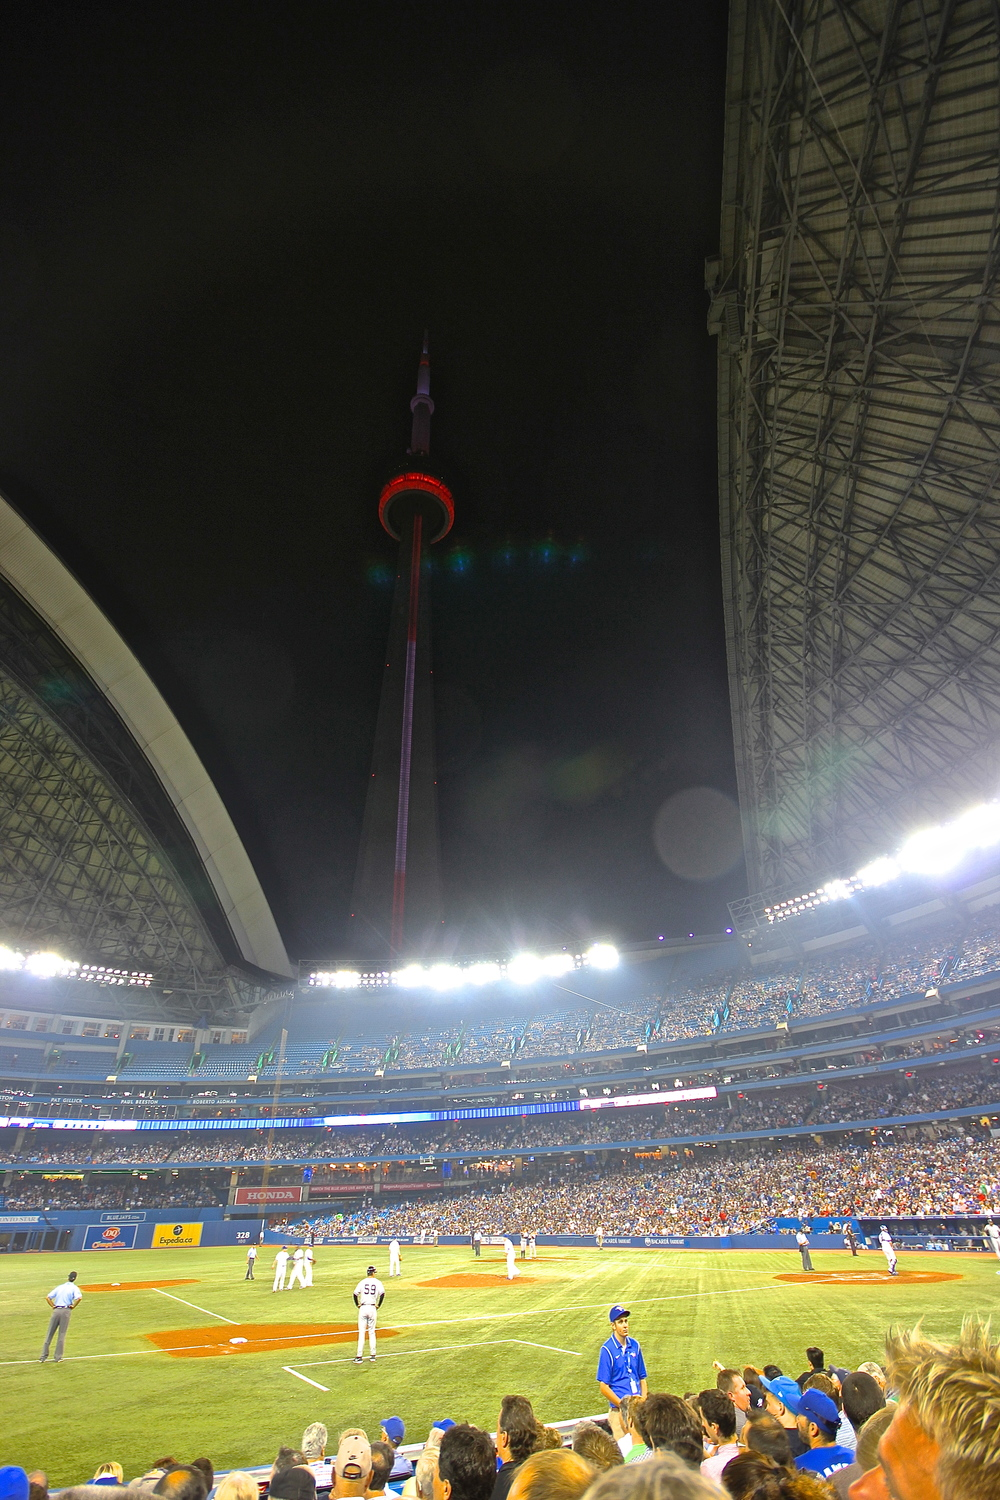 CN Tower lit up from inside the Rogers Centre